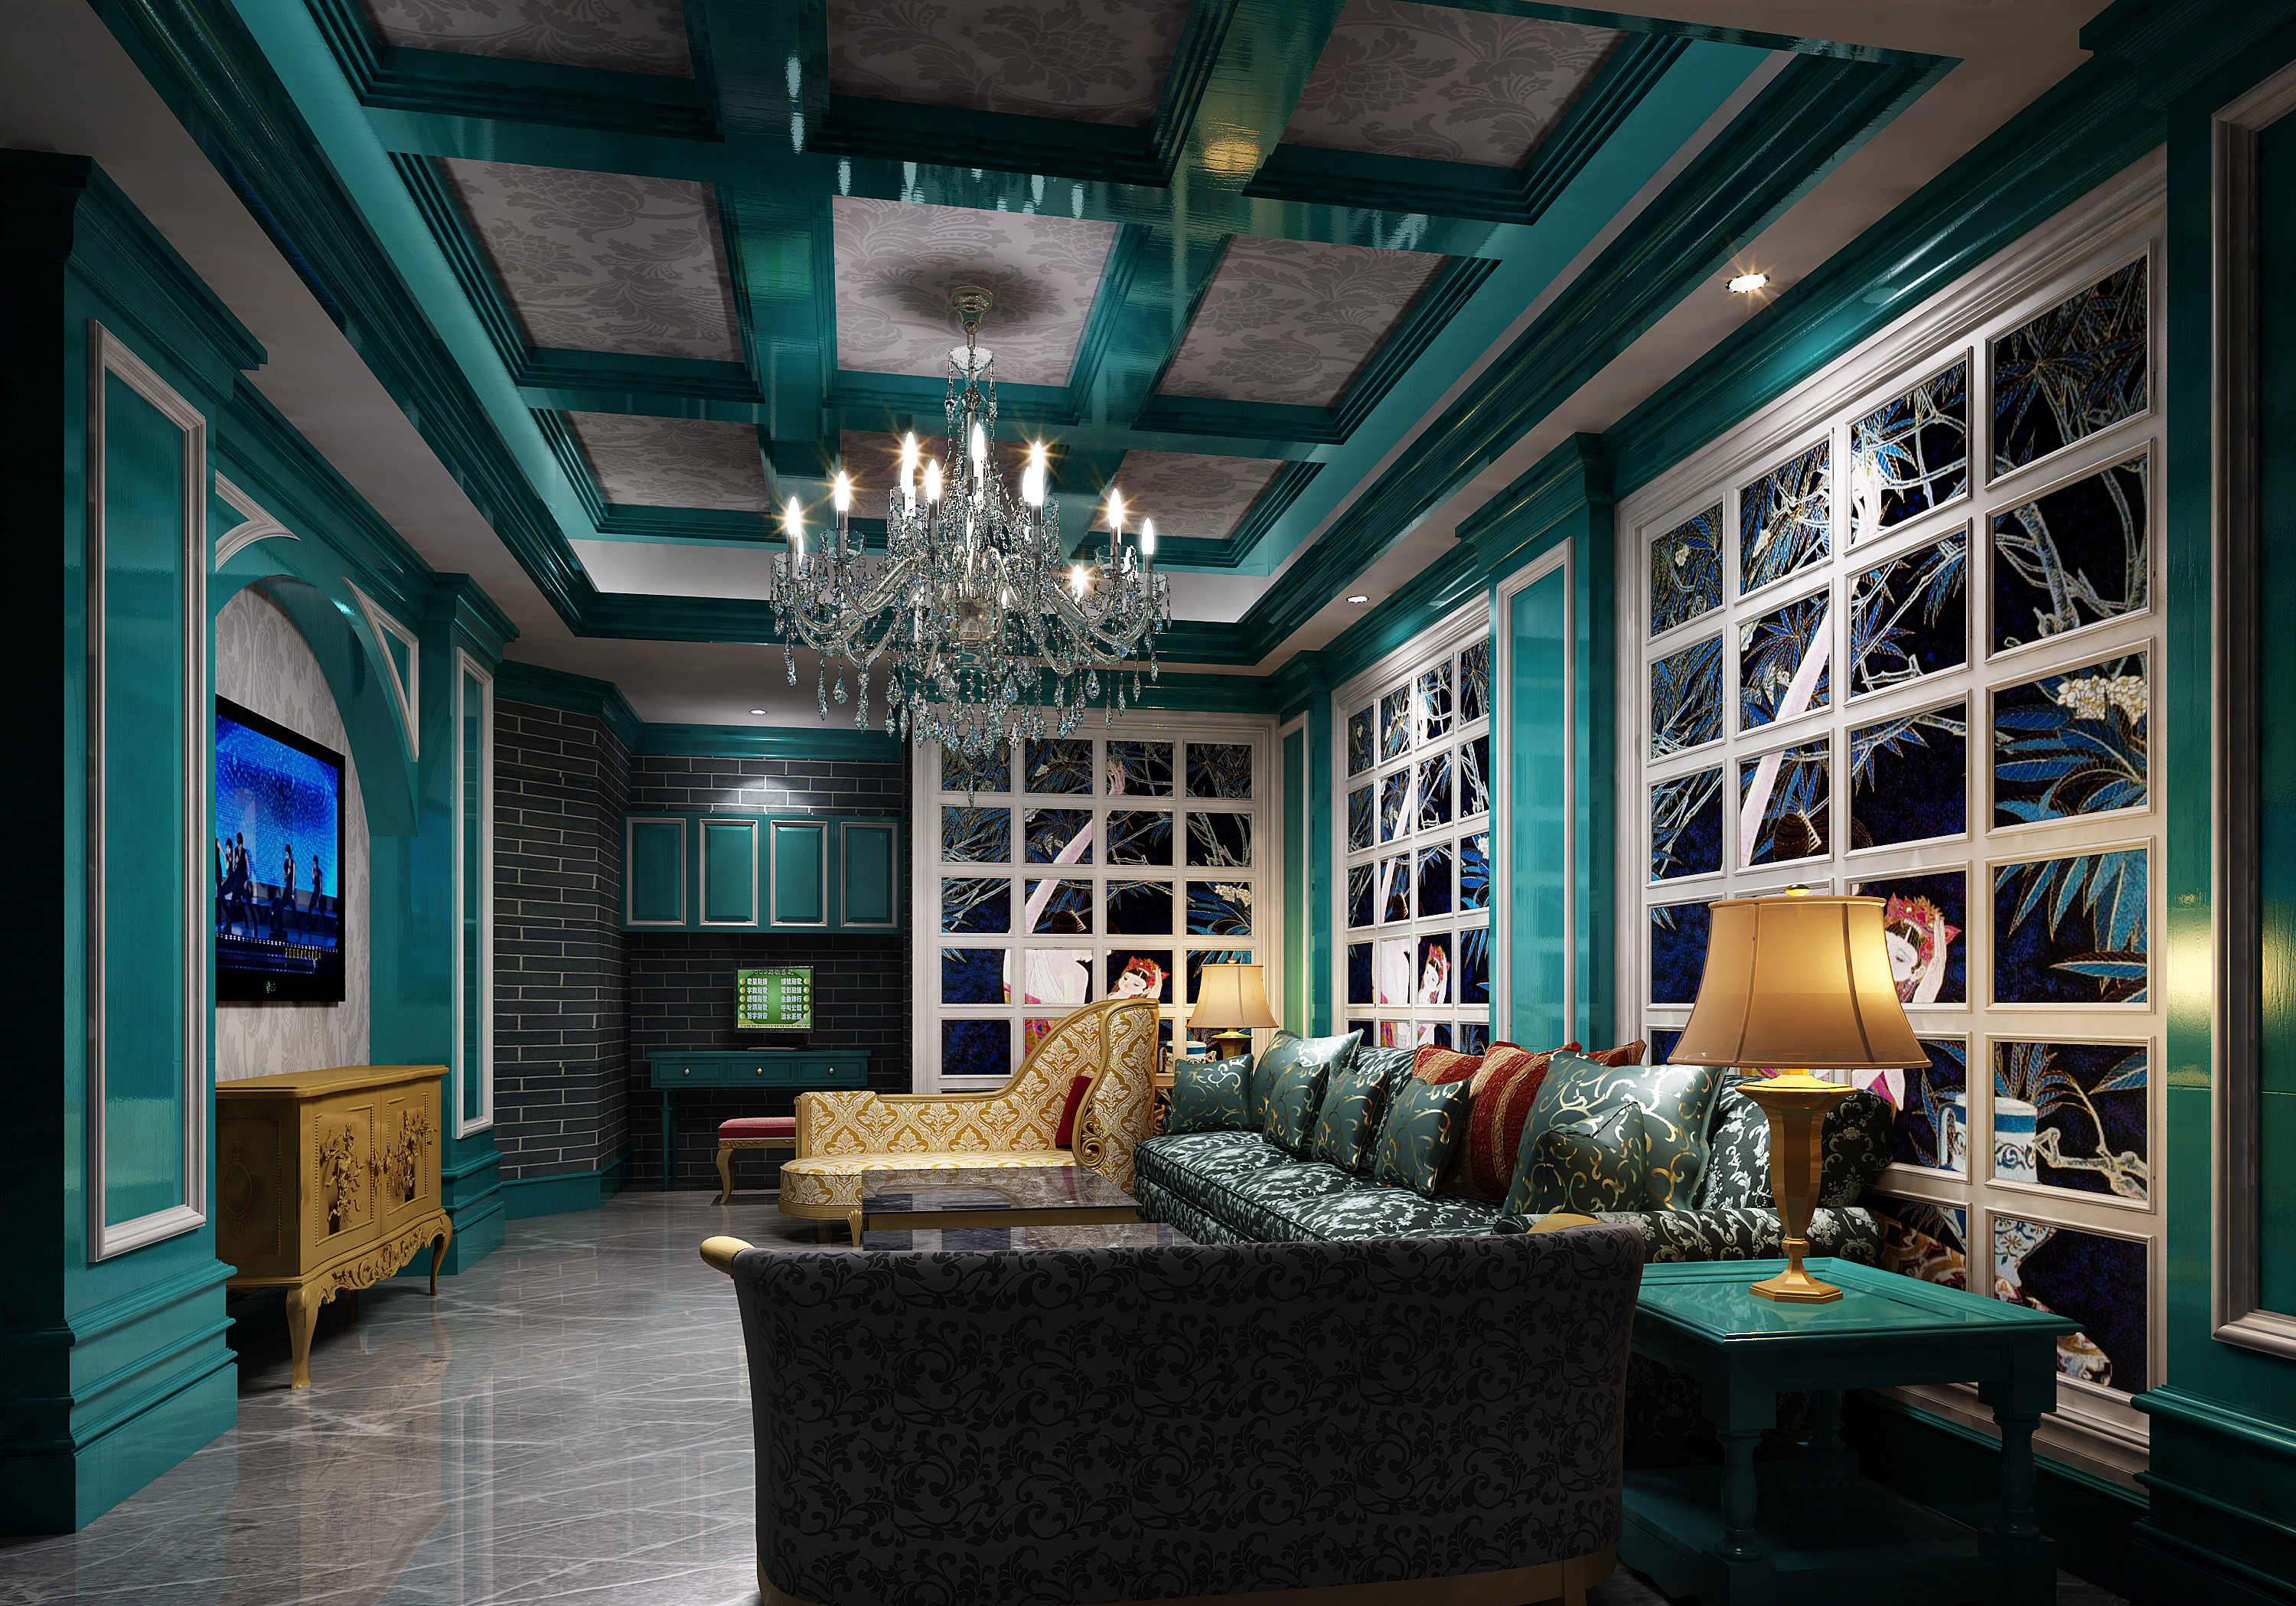 Original Modern Living Room Decorated In Cyan Color With Colo... 3d Model  Max